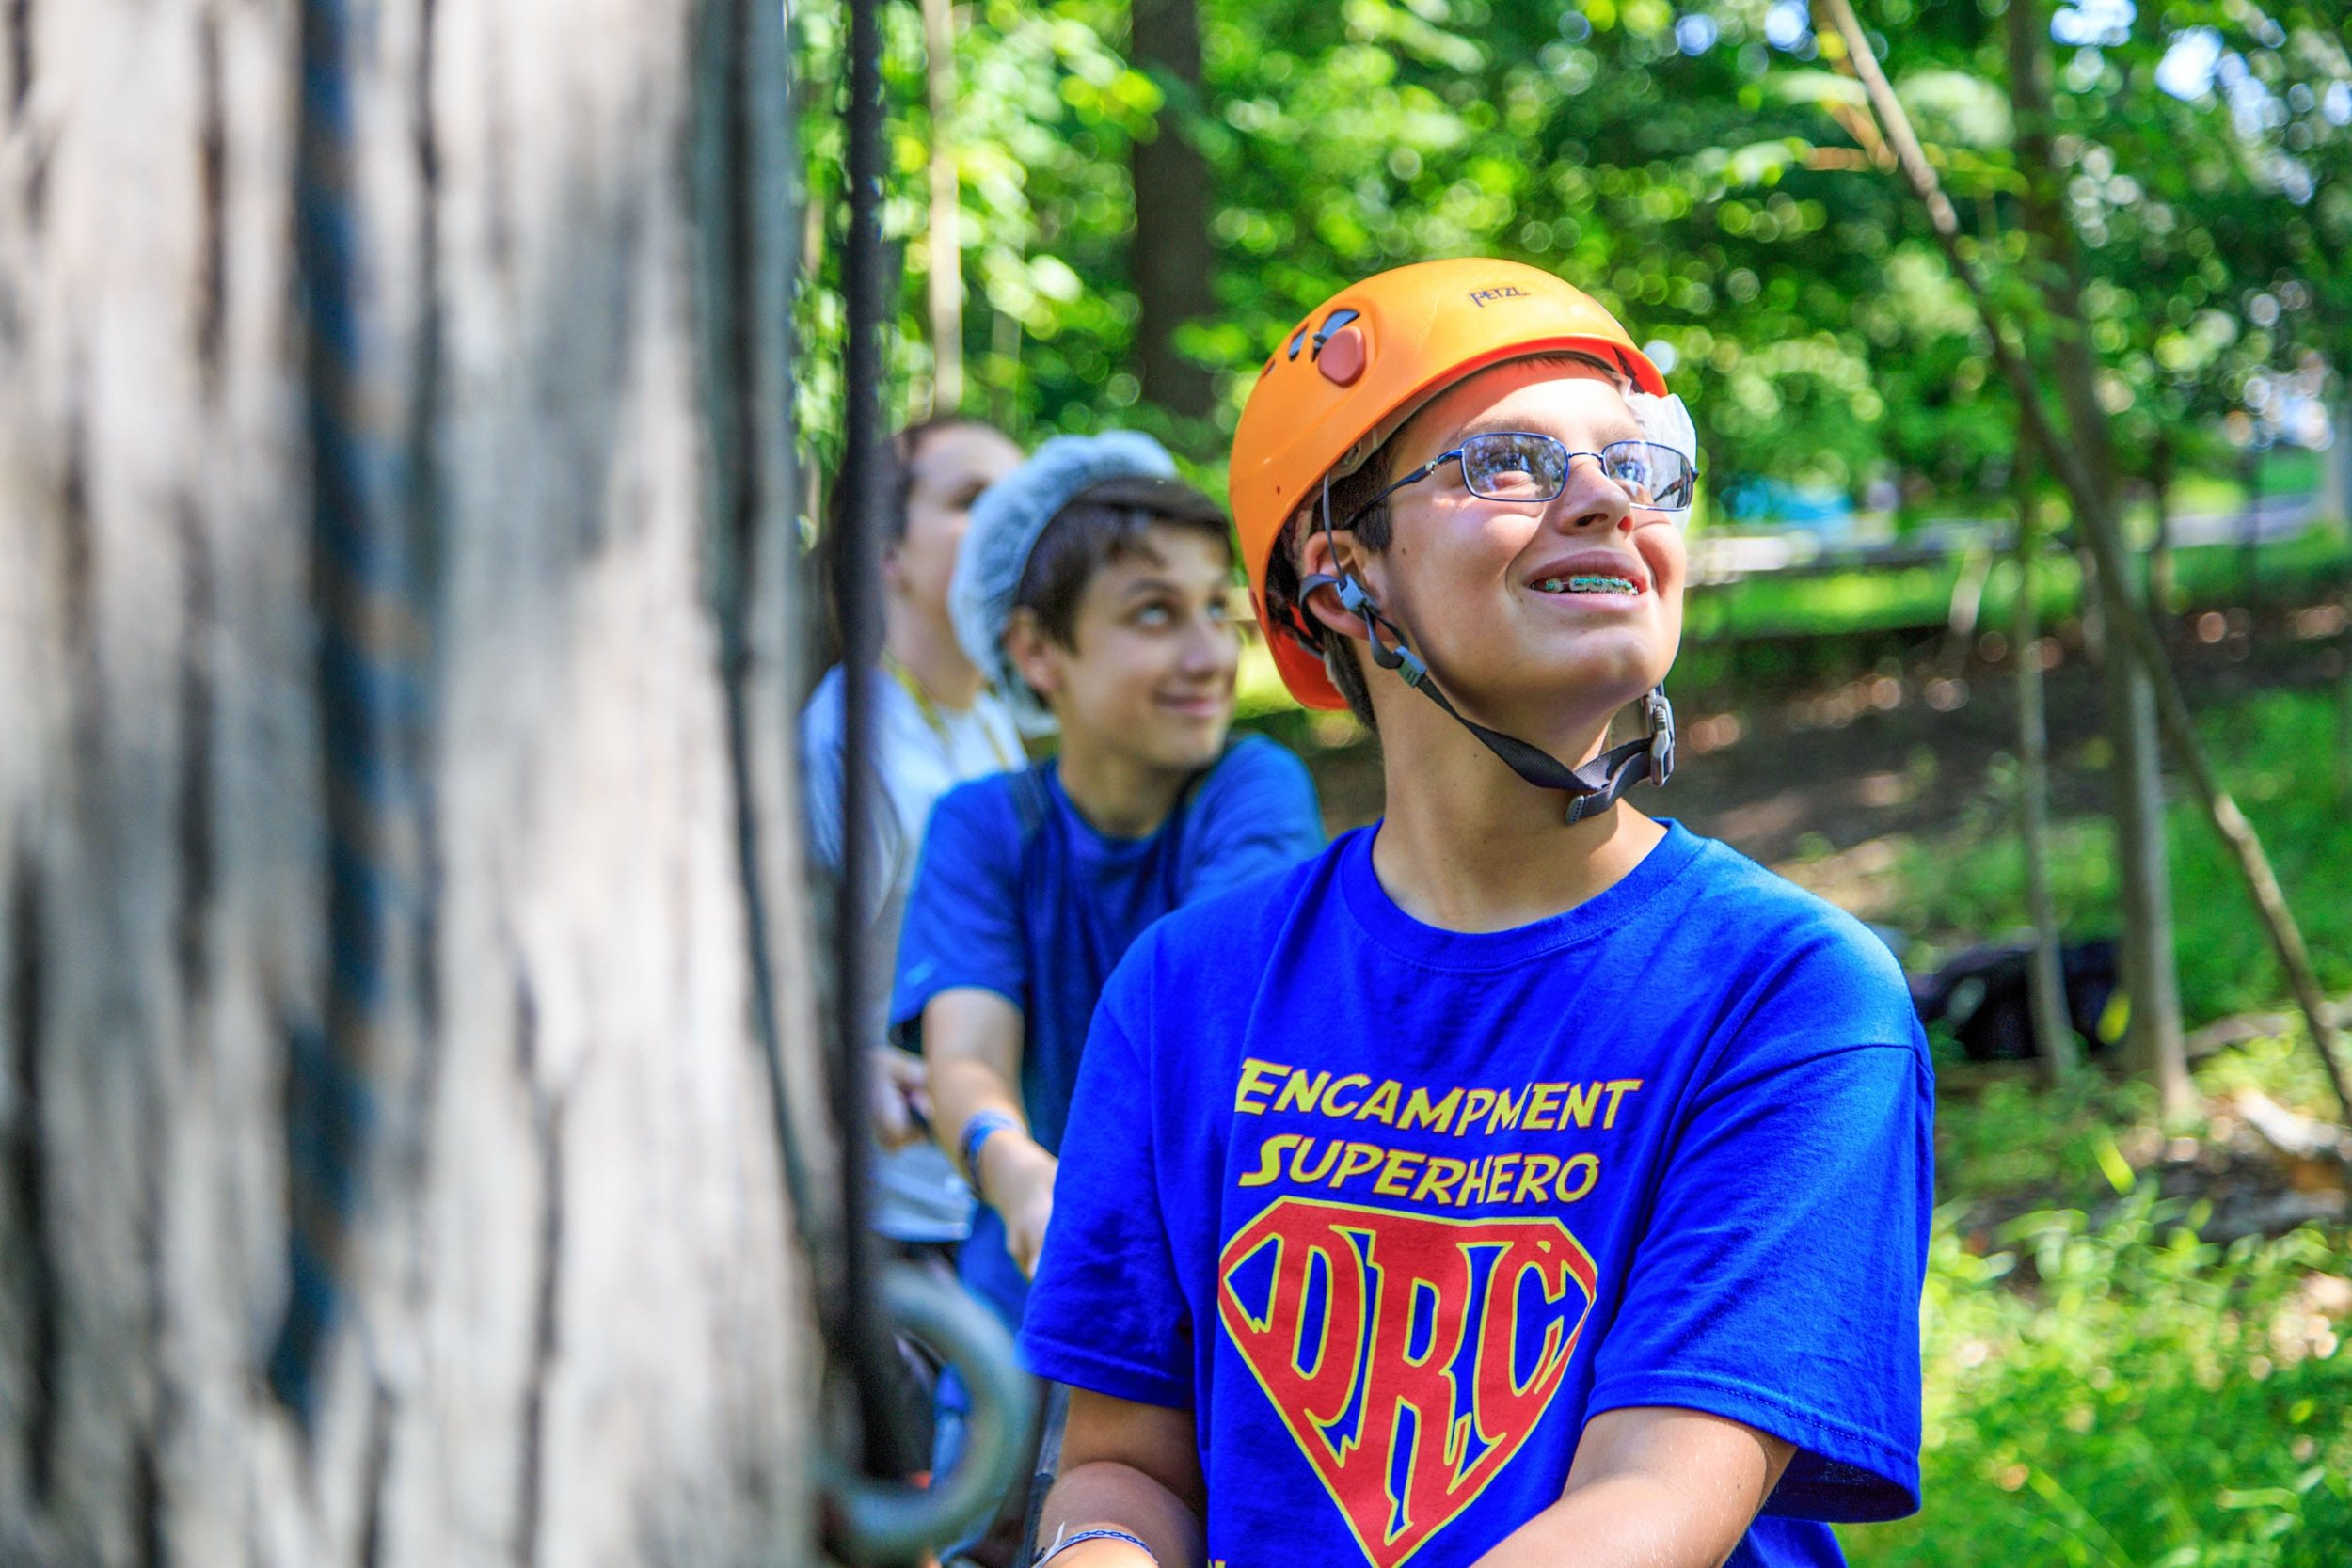 ropes-course-boy.jpg